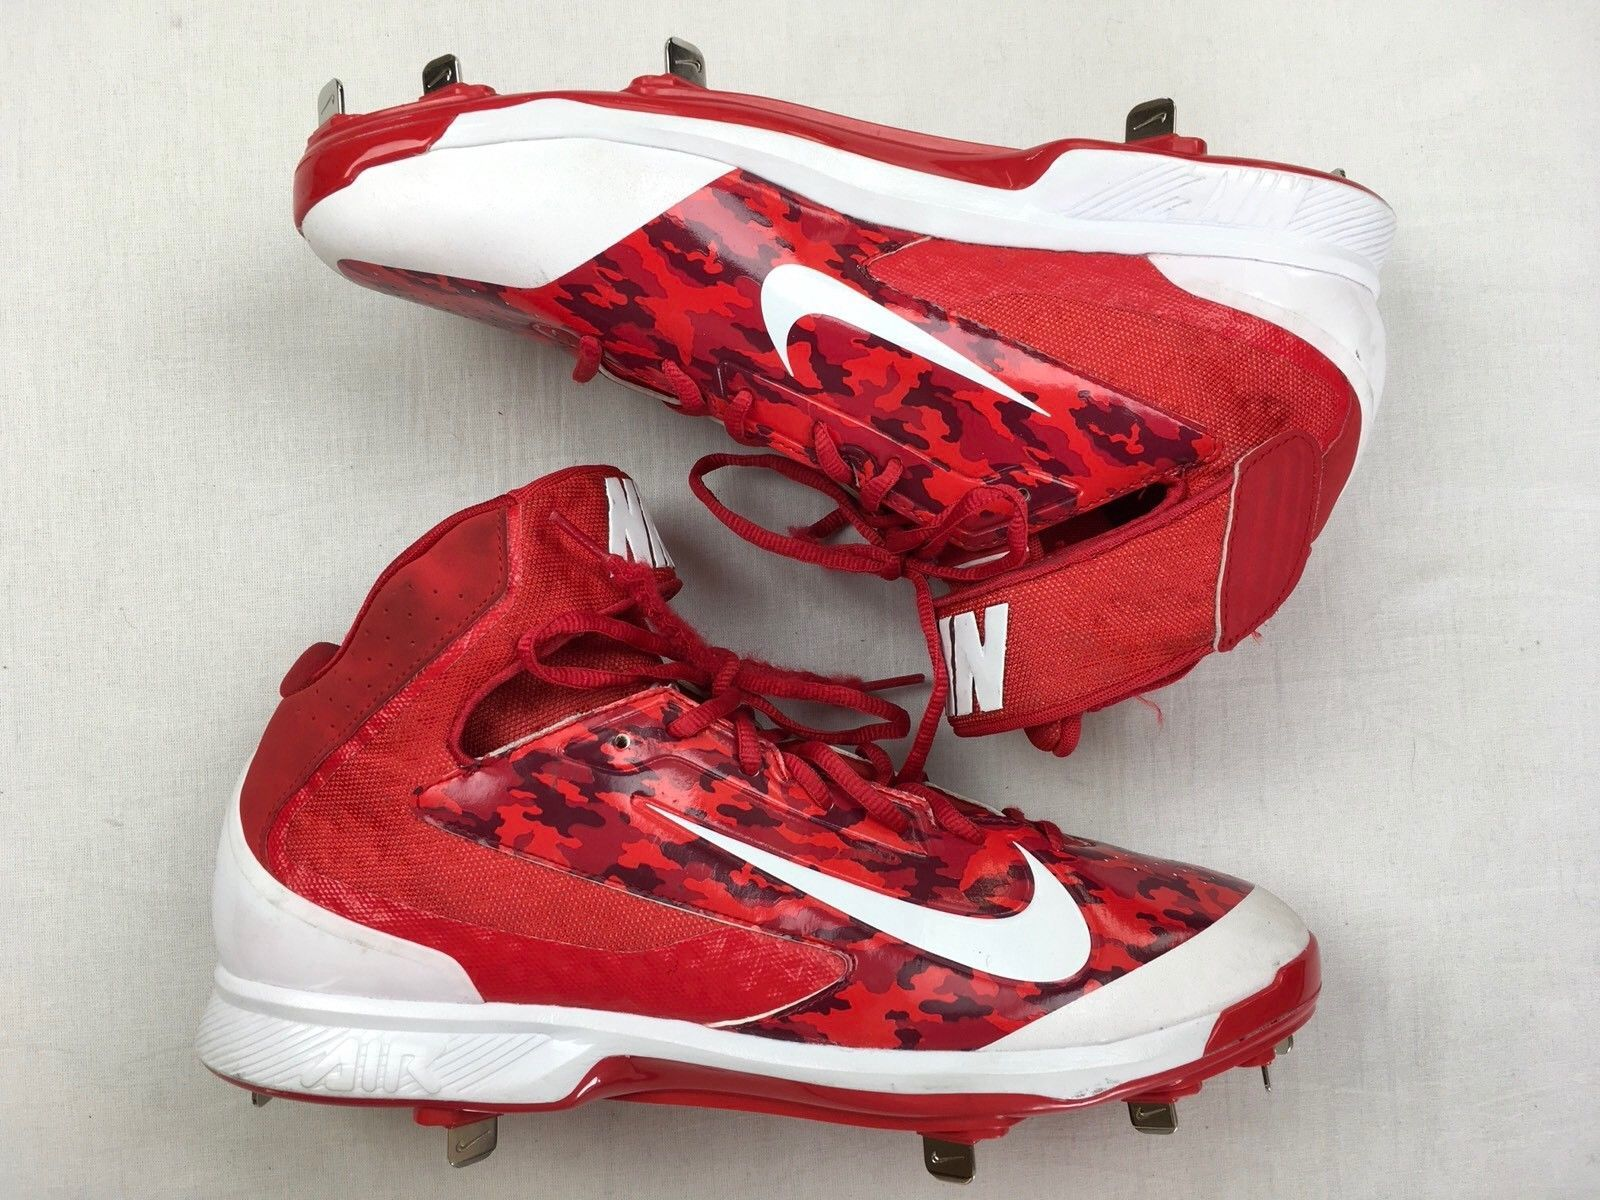 separation shoes a5c55 141fd NIKE AIR HUARACHE Pro Mid Metal Baseball Cleats New Red Camo Men s 599235 13